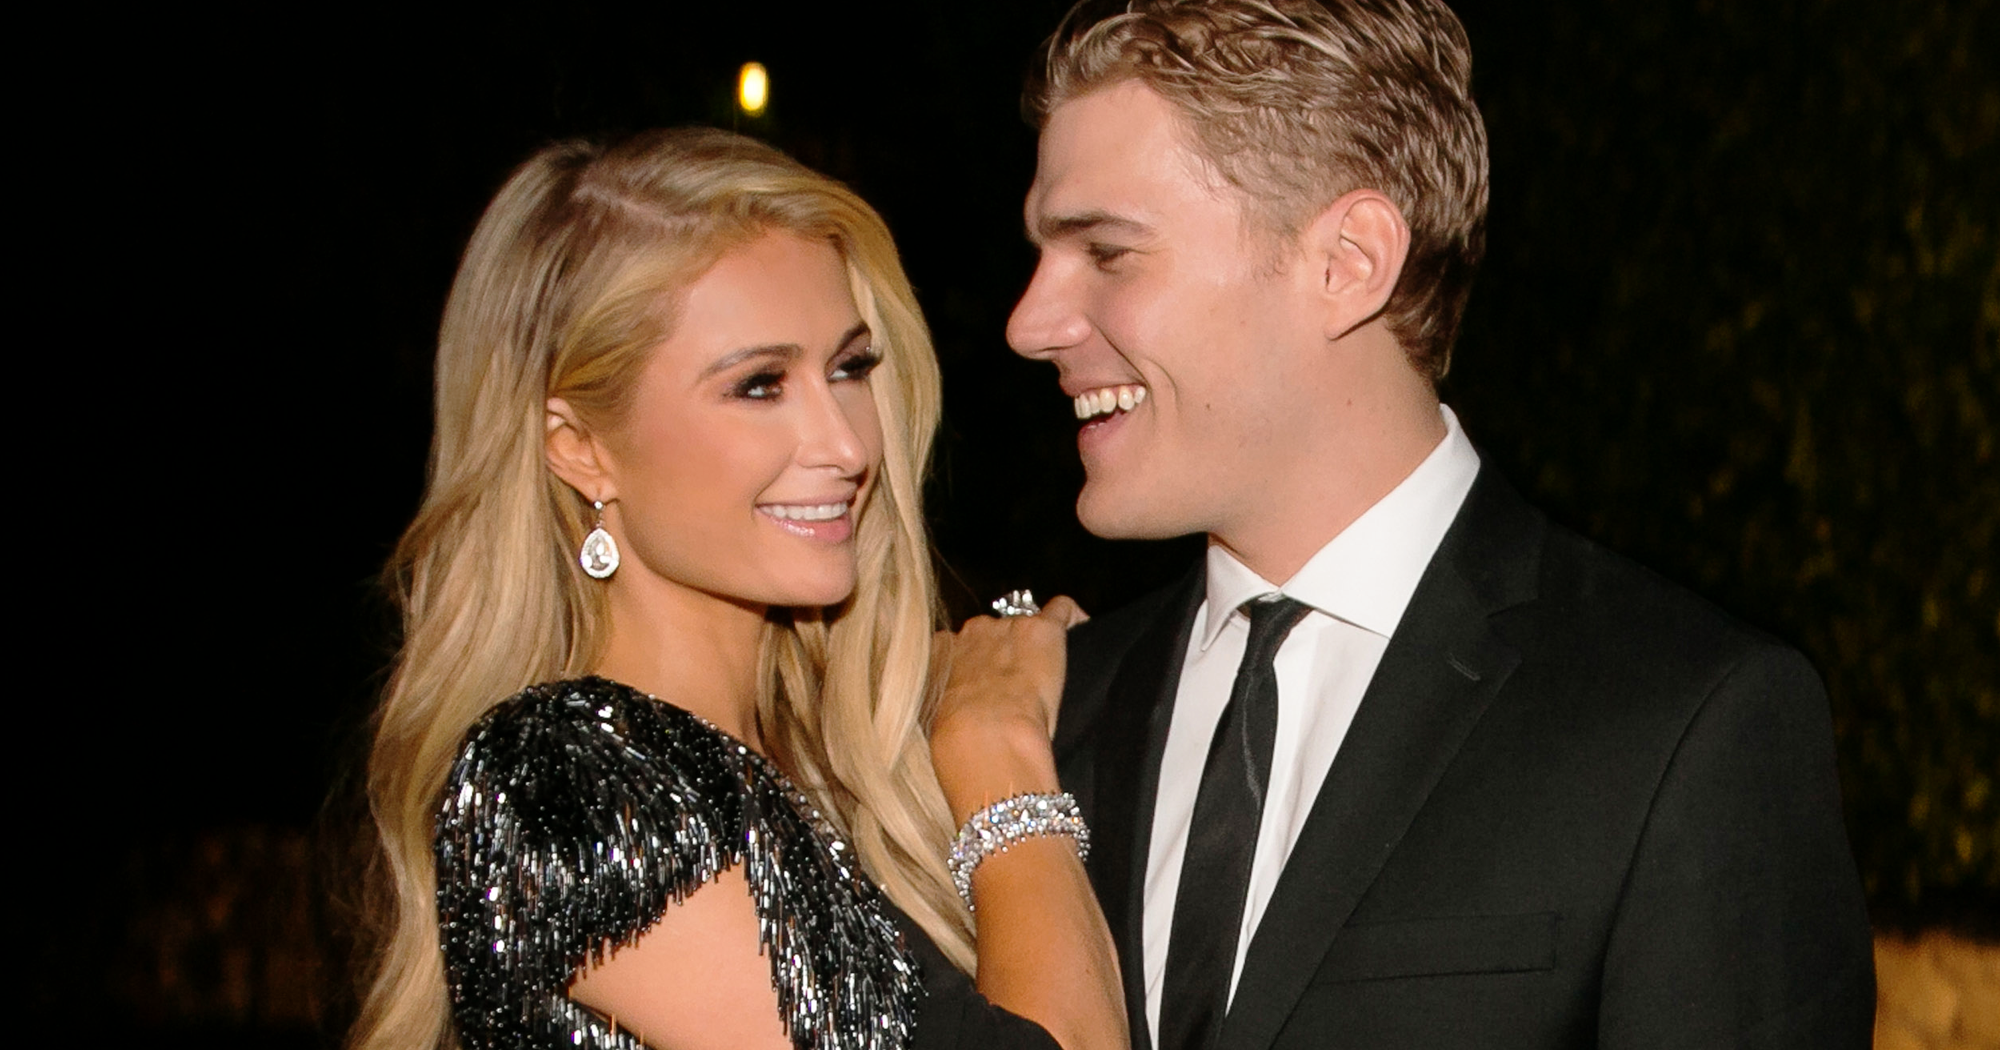 Paris Hilton Just Announced Shes Engaged to Chris Zylka